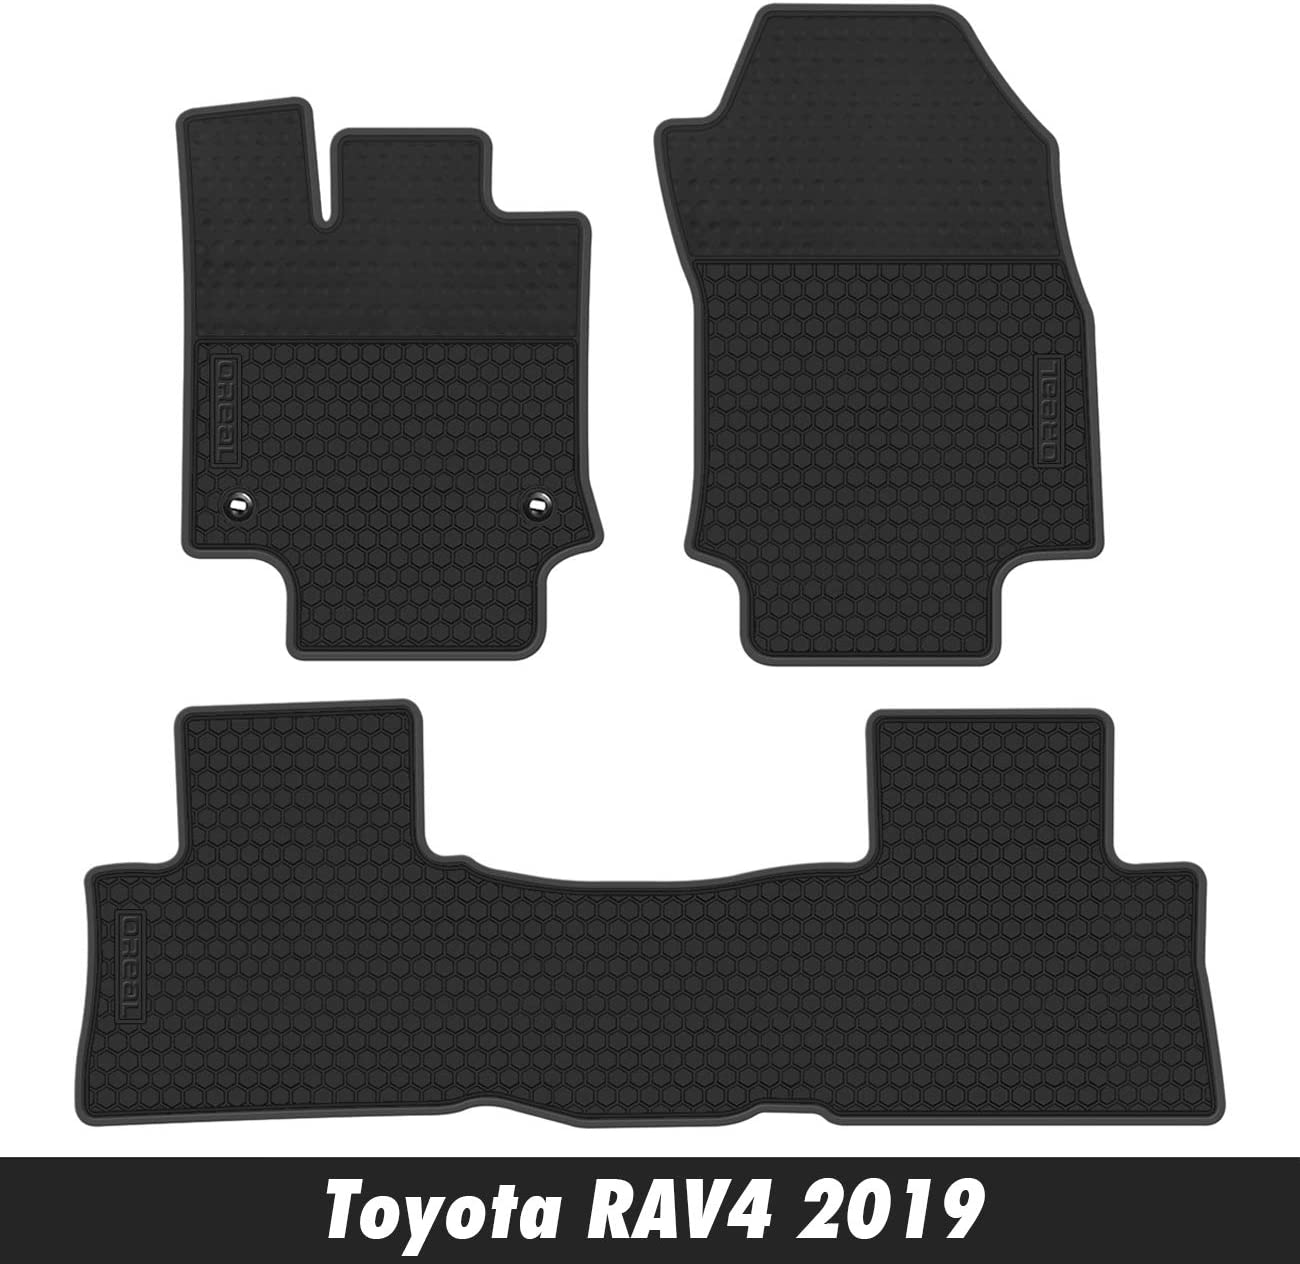 orealauto Car Floor Liners Mats for Toyota RAV4 2019 Vehicle Front and Rear Heavy Duty Rubber Black Red Edge Carpet Set Custom Fit-All Weather Guard Odorless